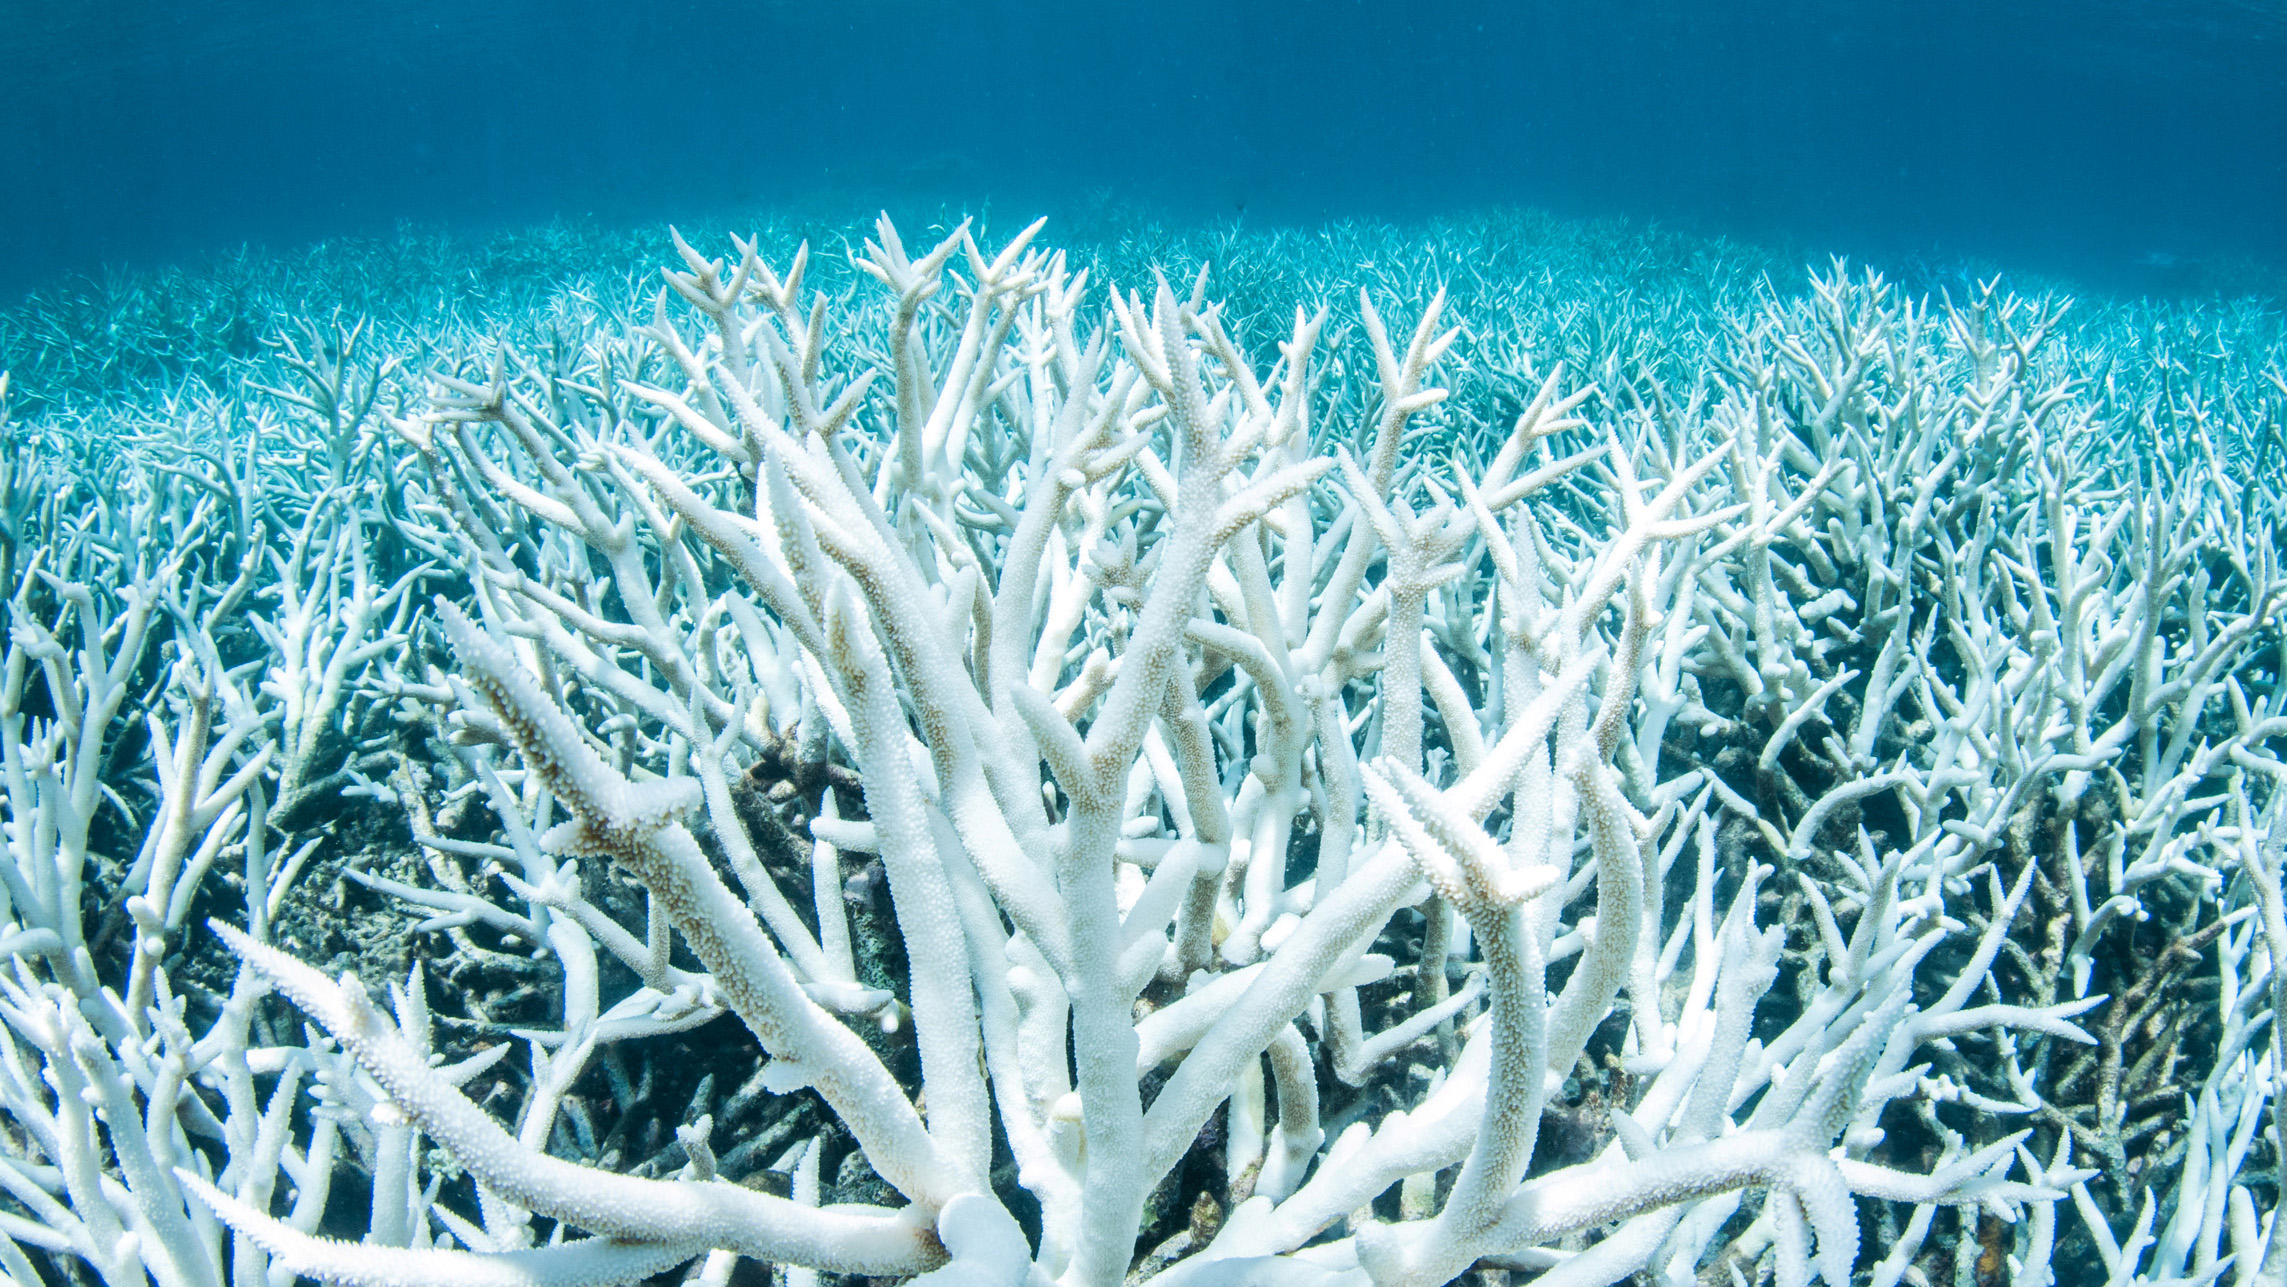 Bleached coral is photographed on Australia's Great Barrier Reef near Port Douglas, February 20, 2017 in this handout image from Greenpeace.         Greenpeace/Brett Monroe Garner/Handout